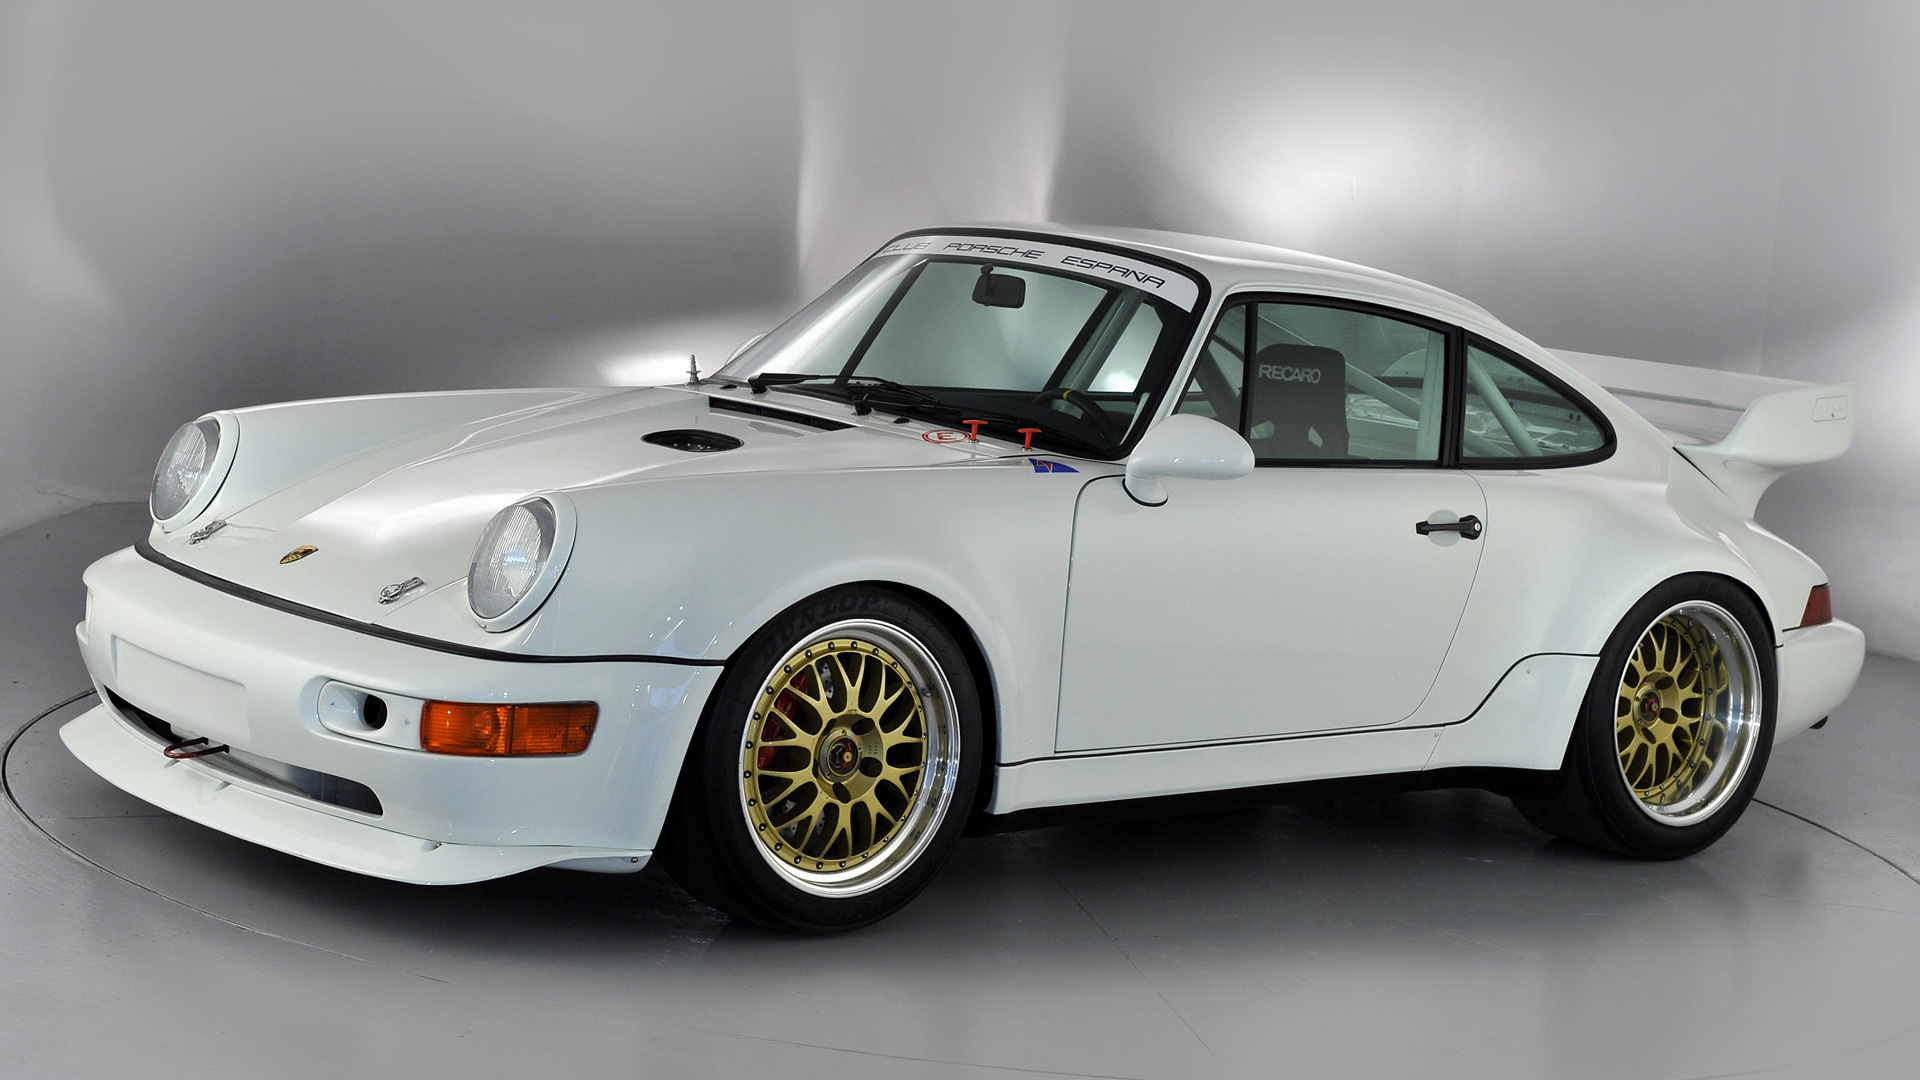 Porsche 911 Carrera Rsr 1993 Wallpapers And Hd Images